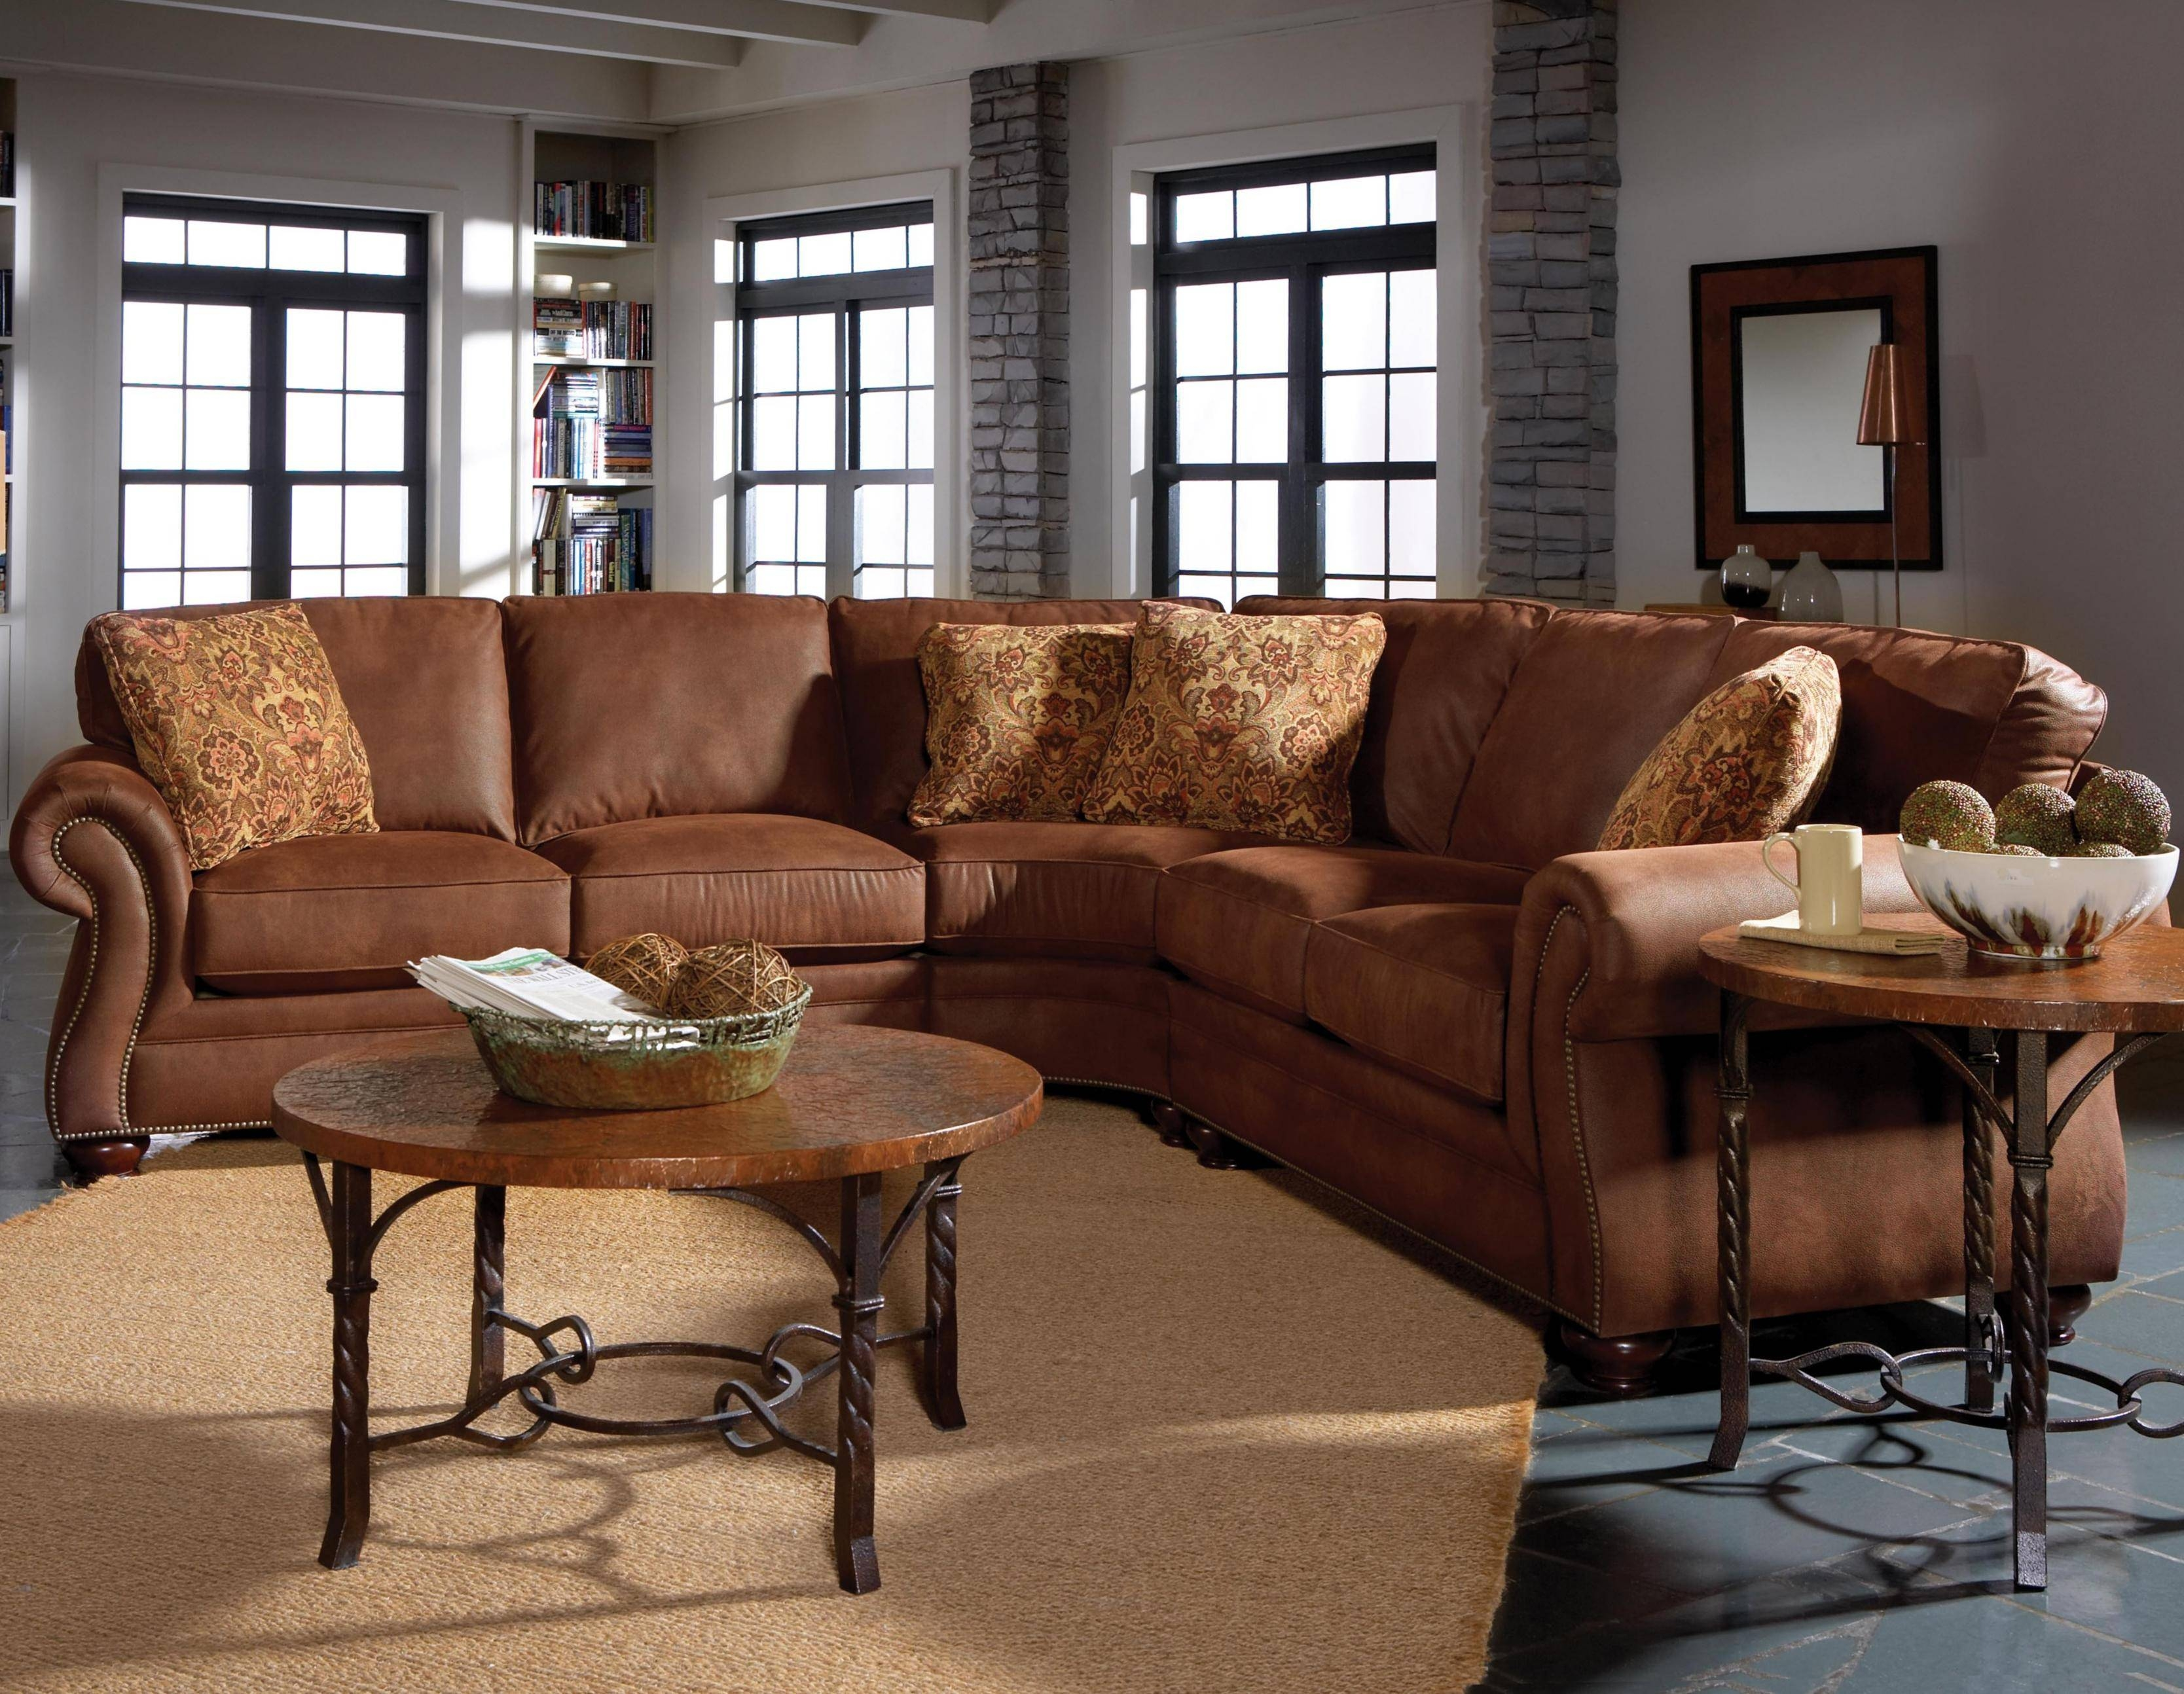 Broyhill Furniture Laramie 3 Piece Wedge Sectional Sofa - Wayside for Broyhill Reclining Sofas (Image 3 of 15)